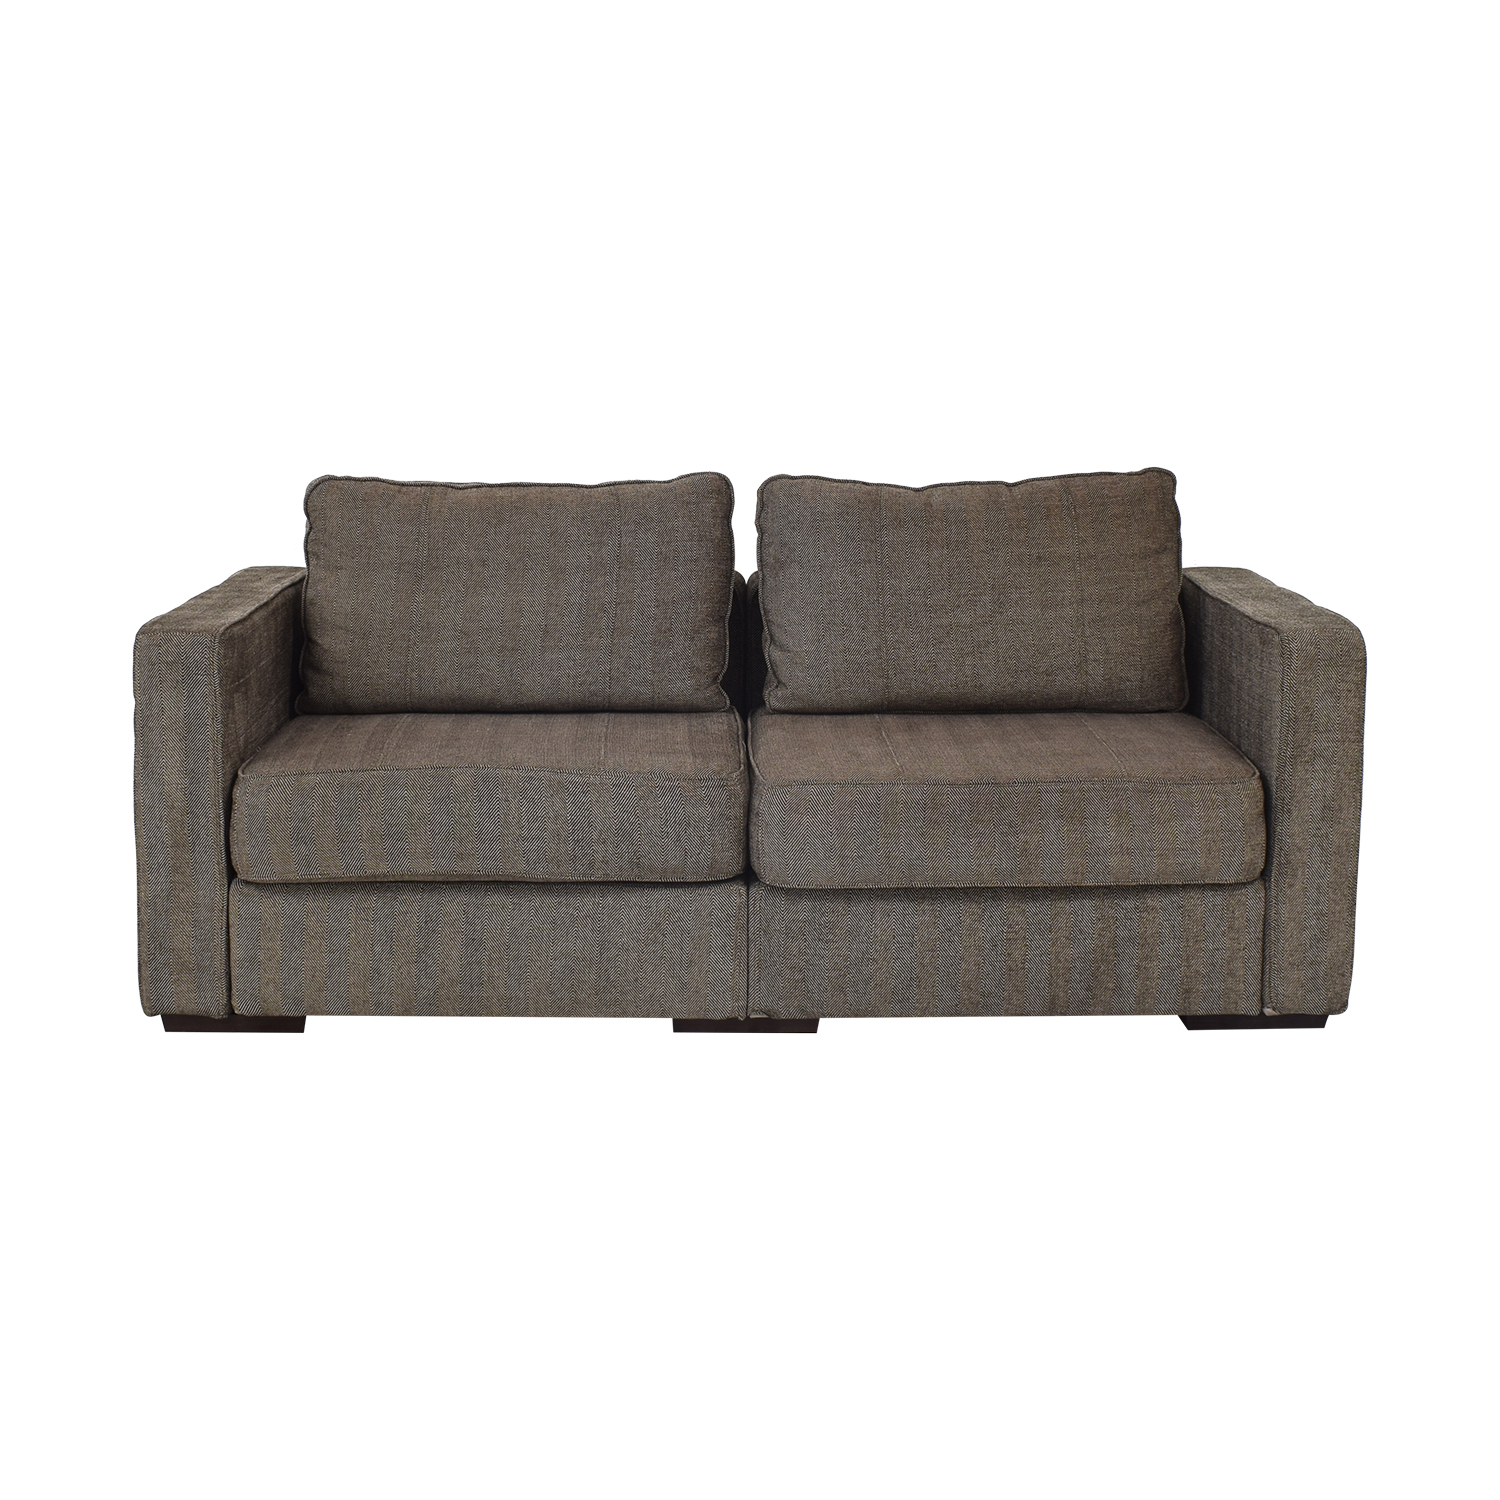 Lovesac Modular Sectional Loveseat sale